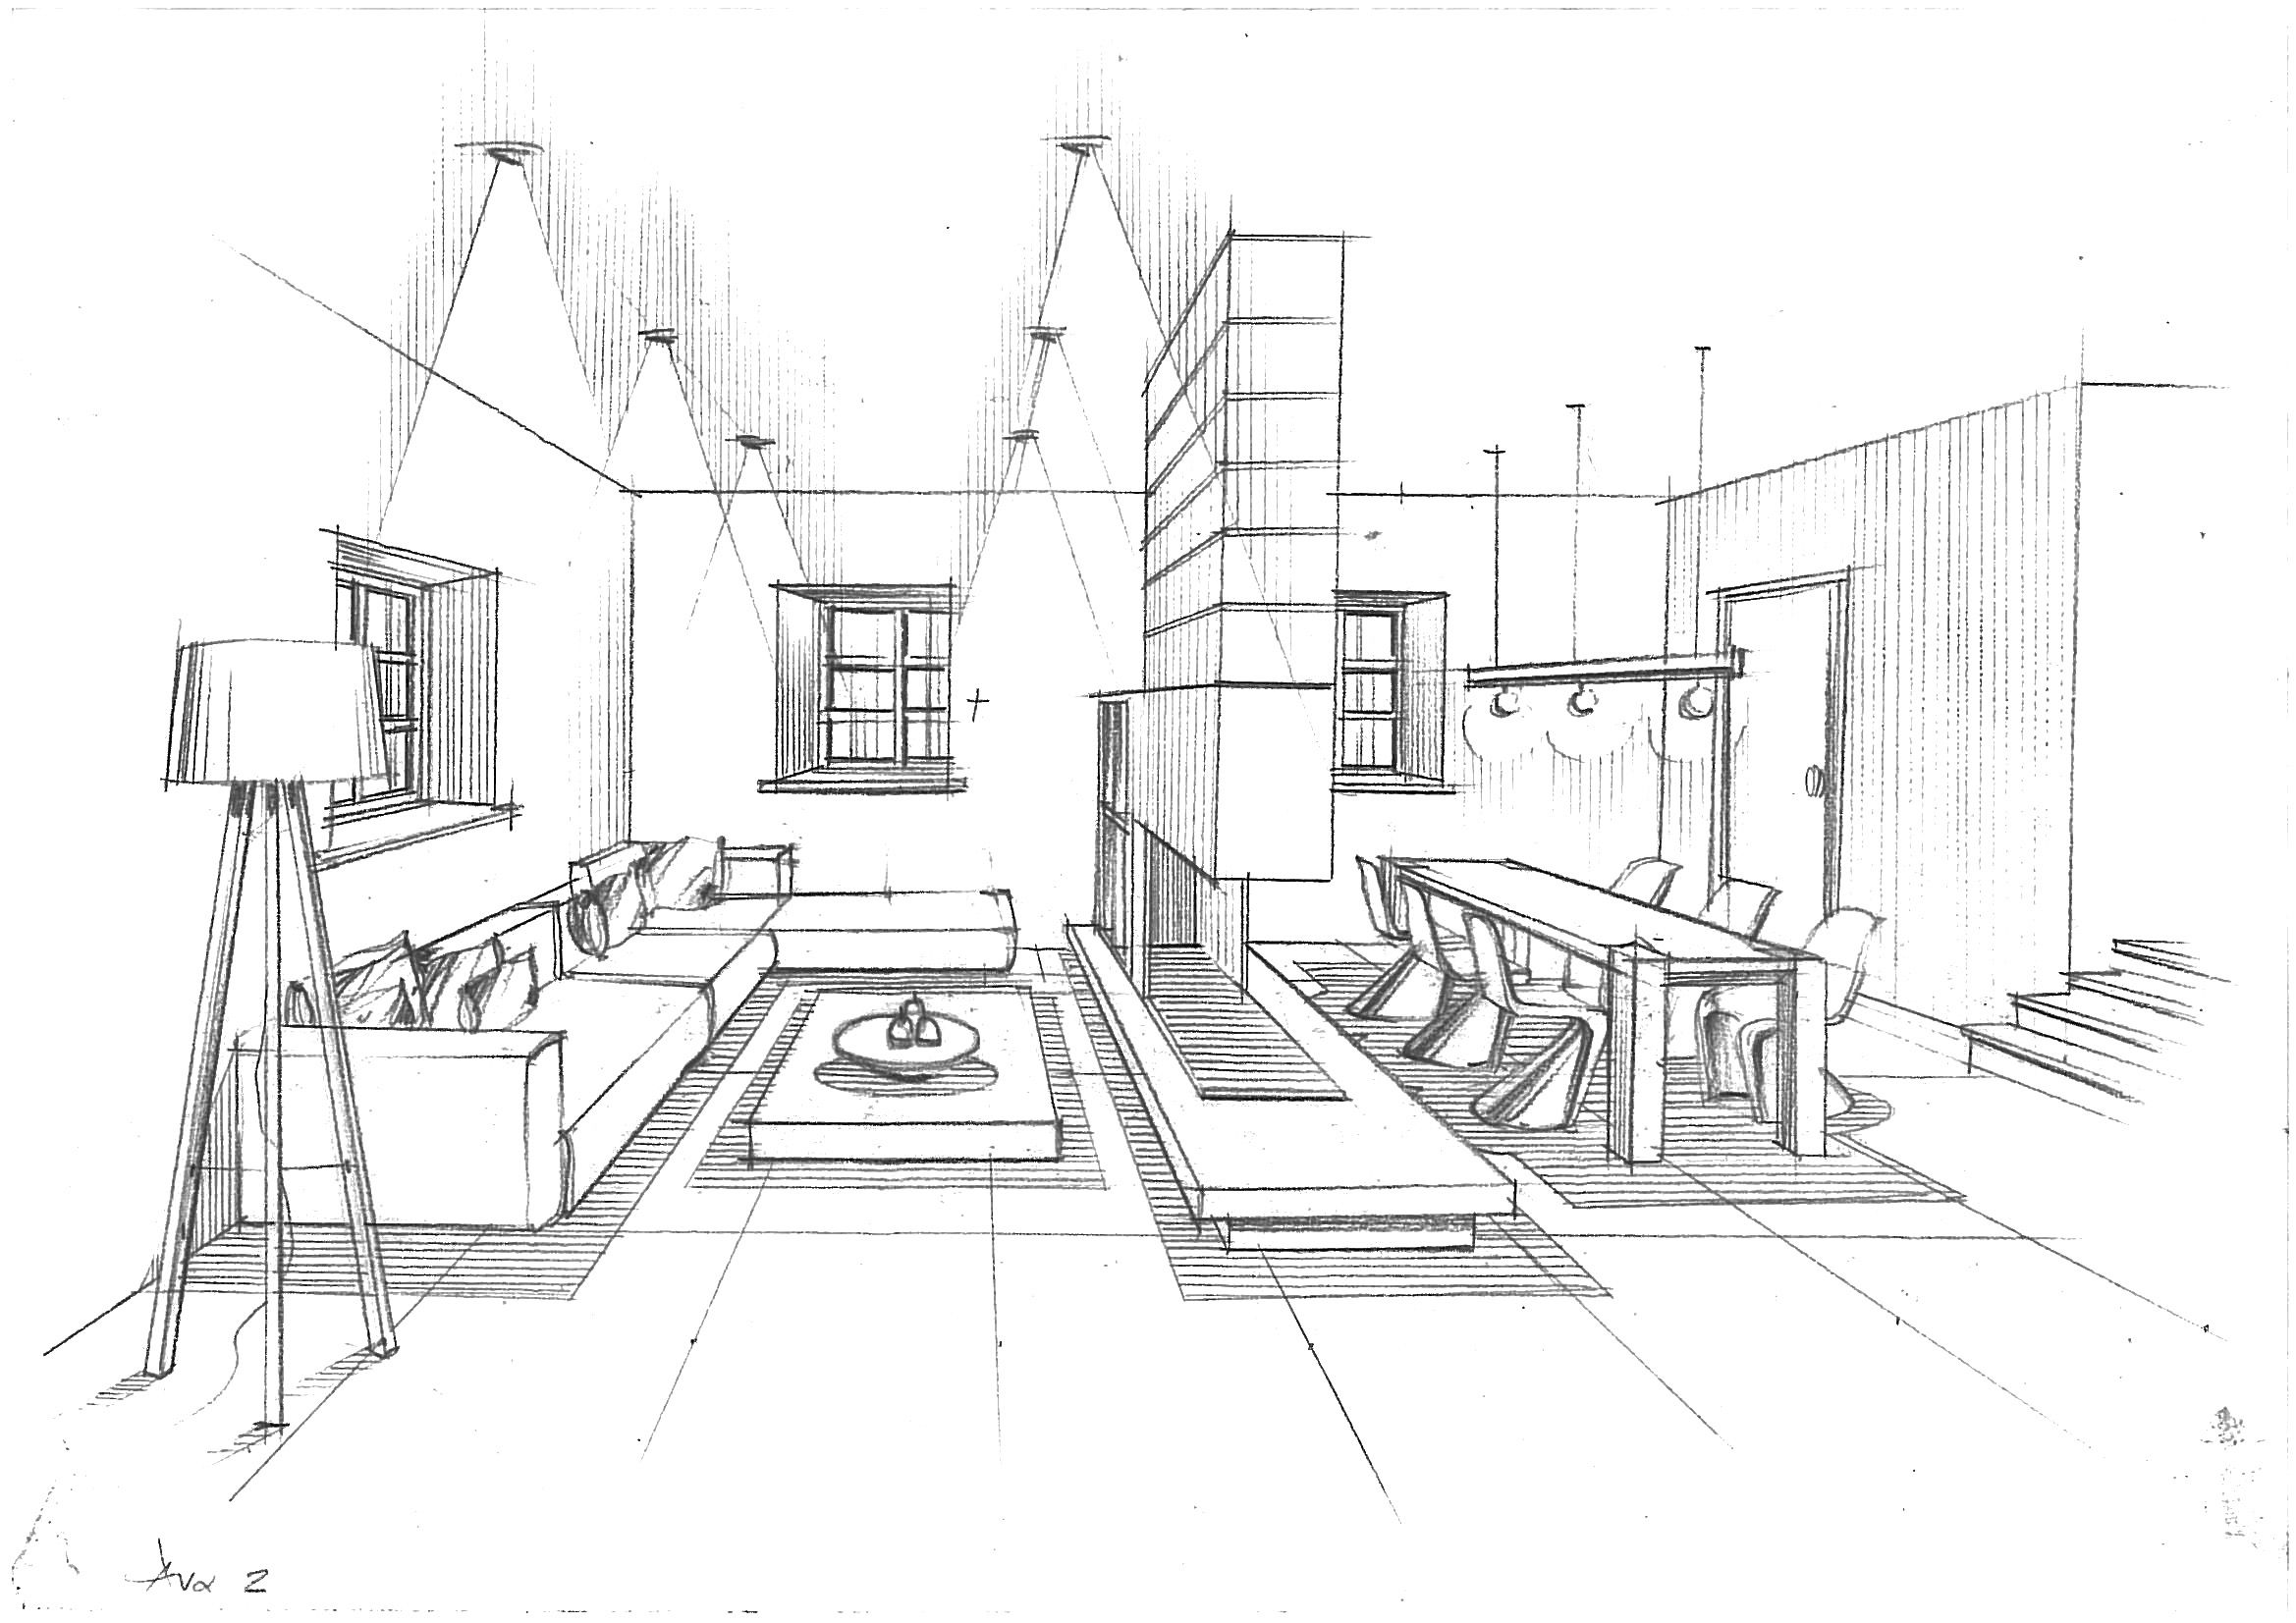 Modern Living Room College Project Urban Design Industrial Home D Architecture Design Sketch Perspective Drawing Architecture Architecture Concept Drawings